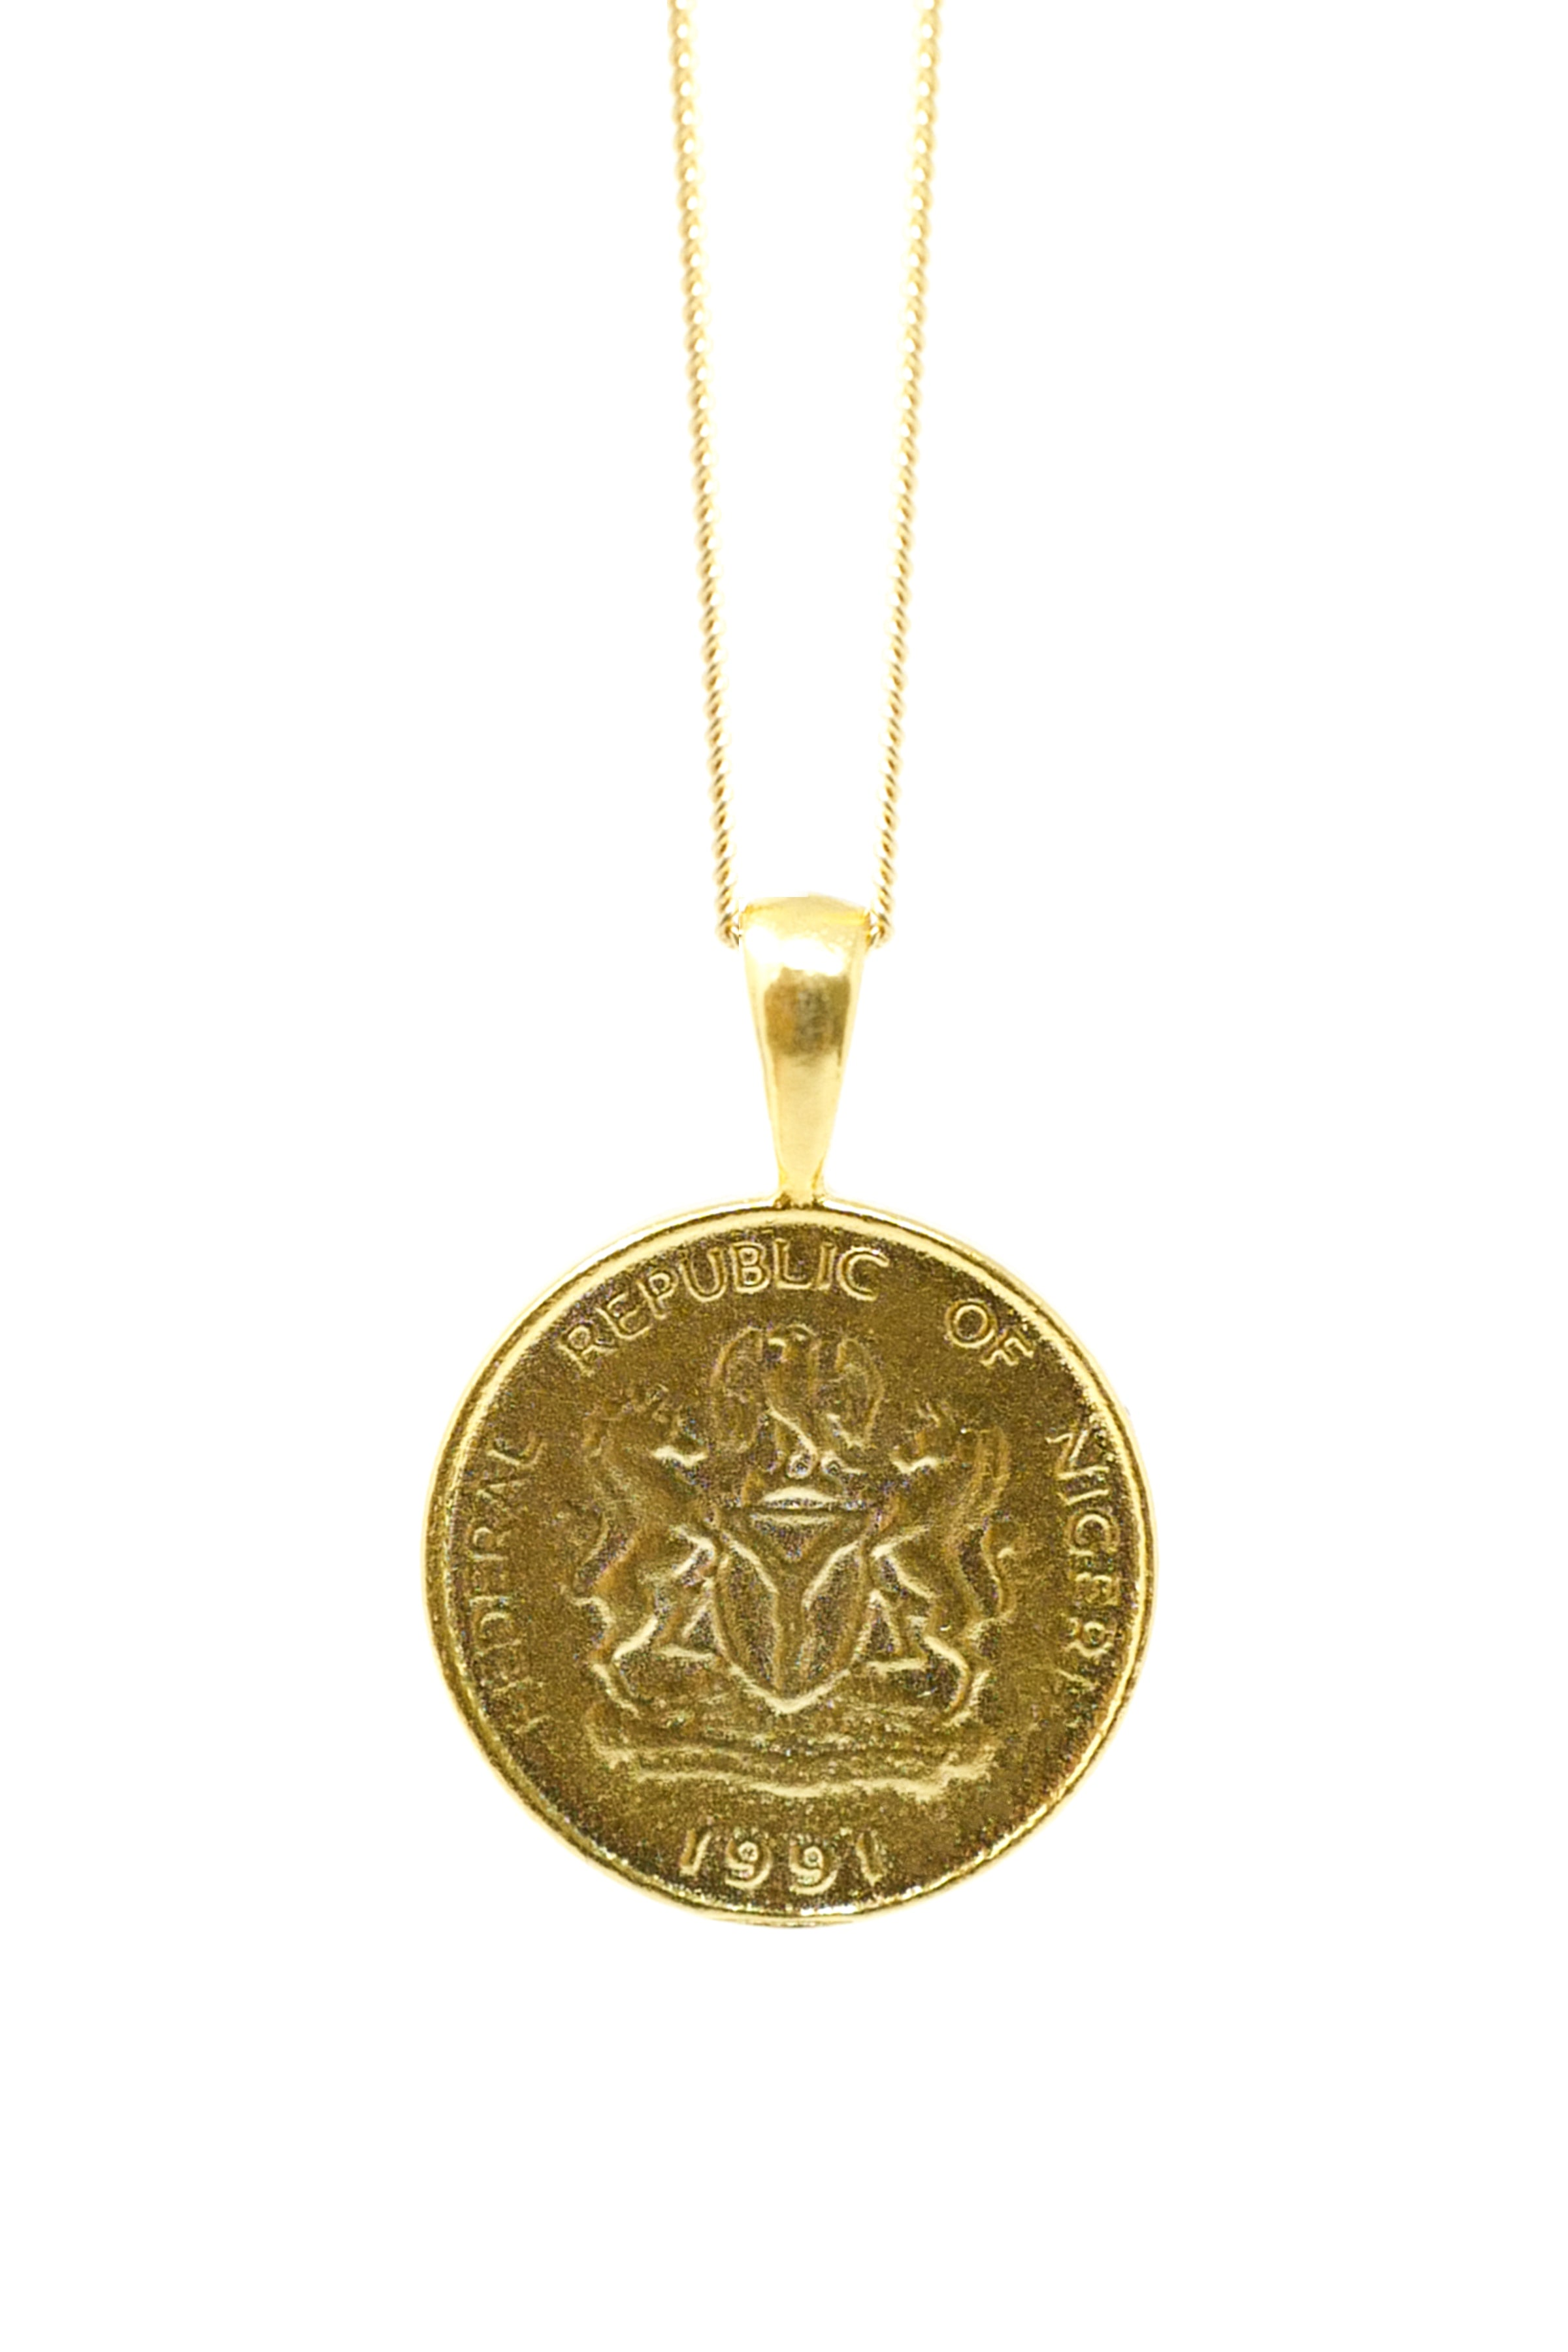 THE NIGERIA Kobo Coin Necklace